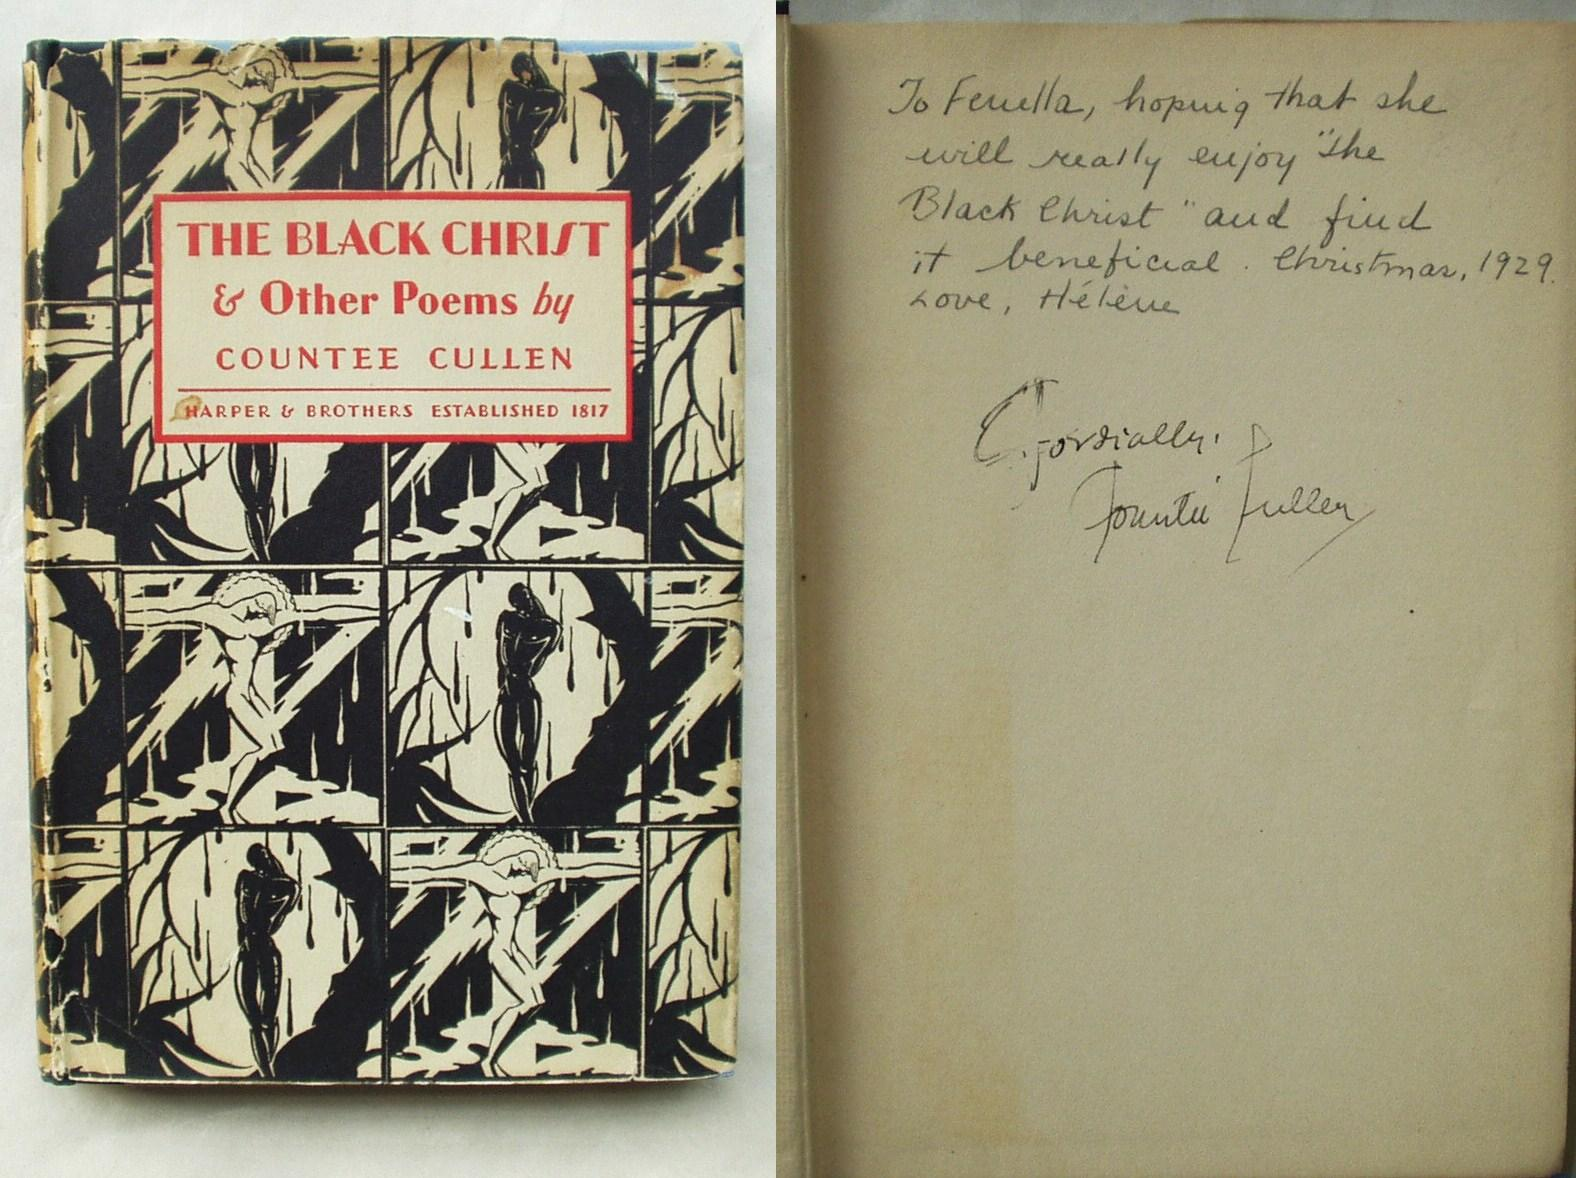 Book Cover Black Jacket ~ The black christ other poems by cullen countee harper